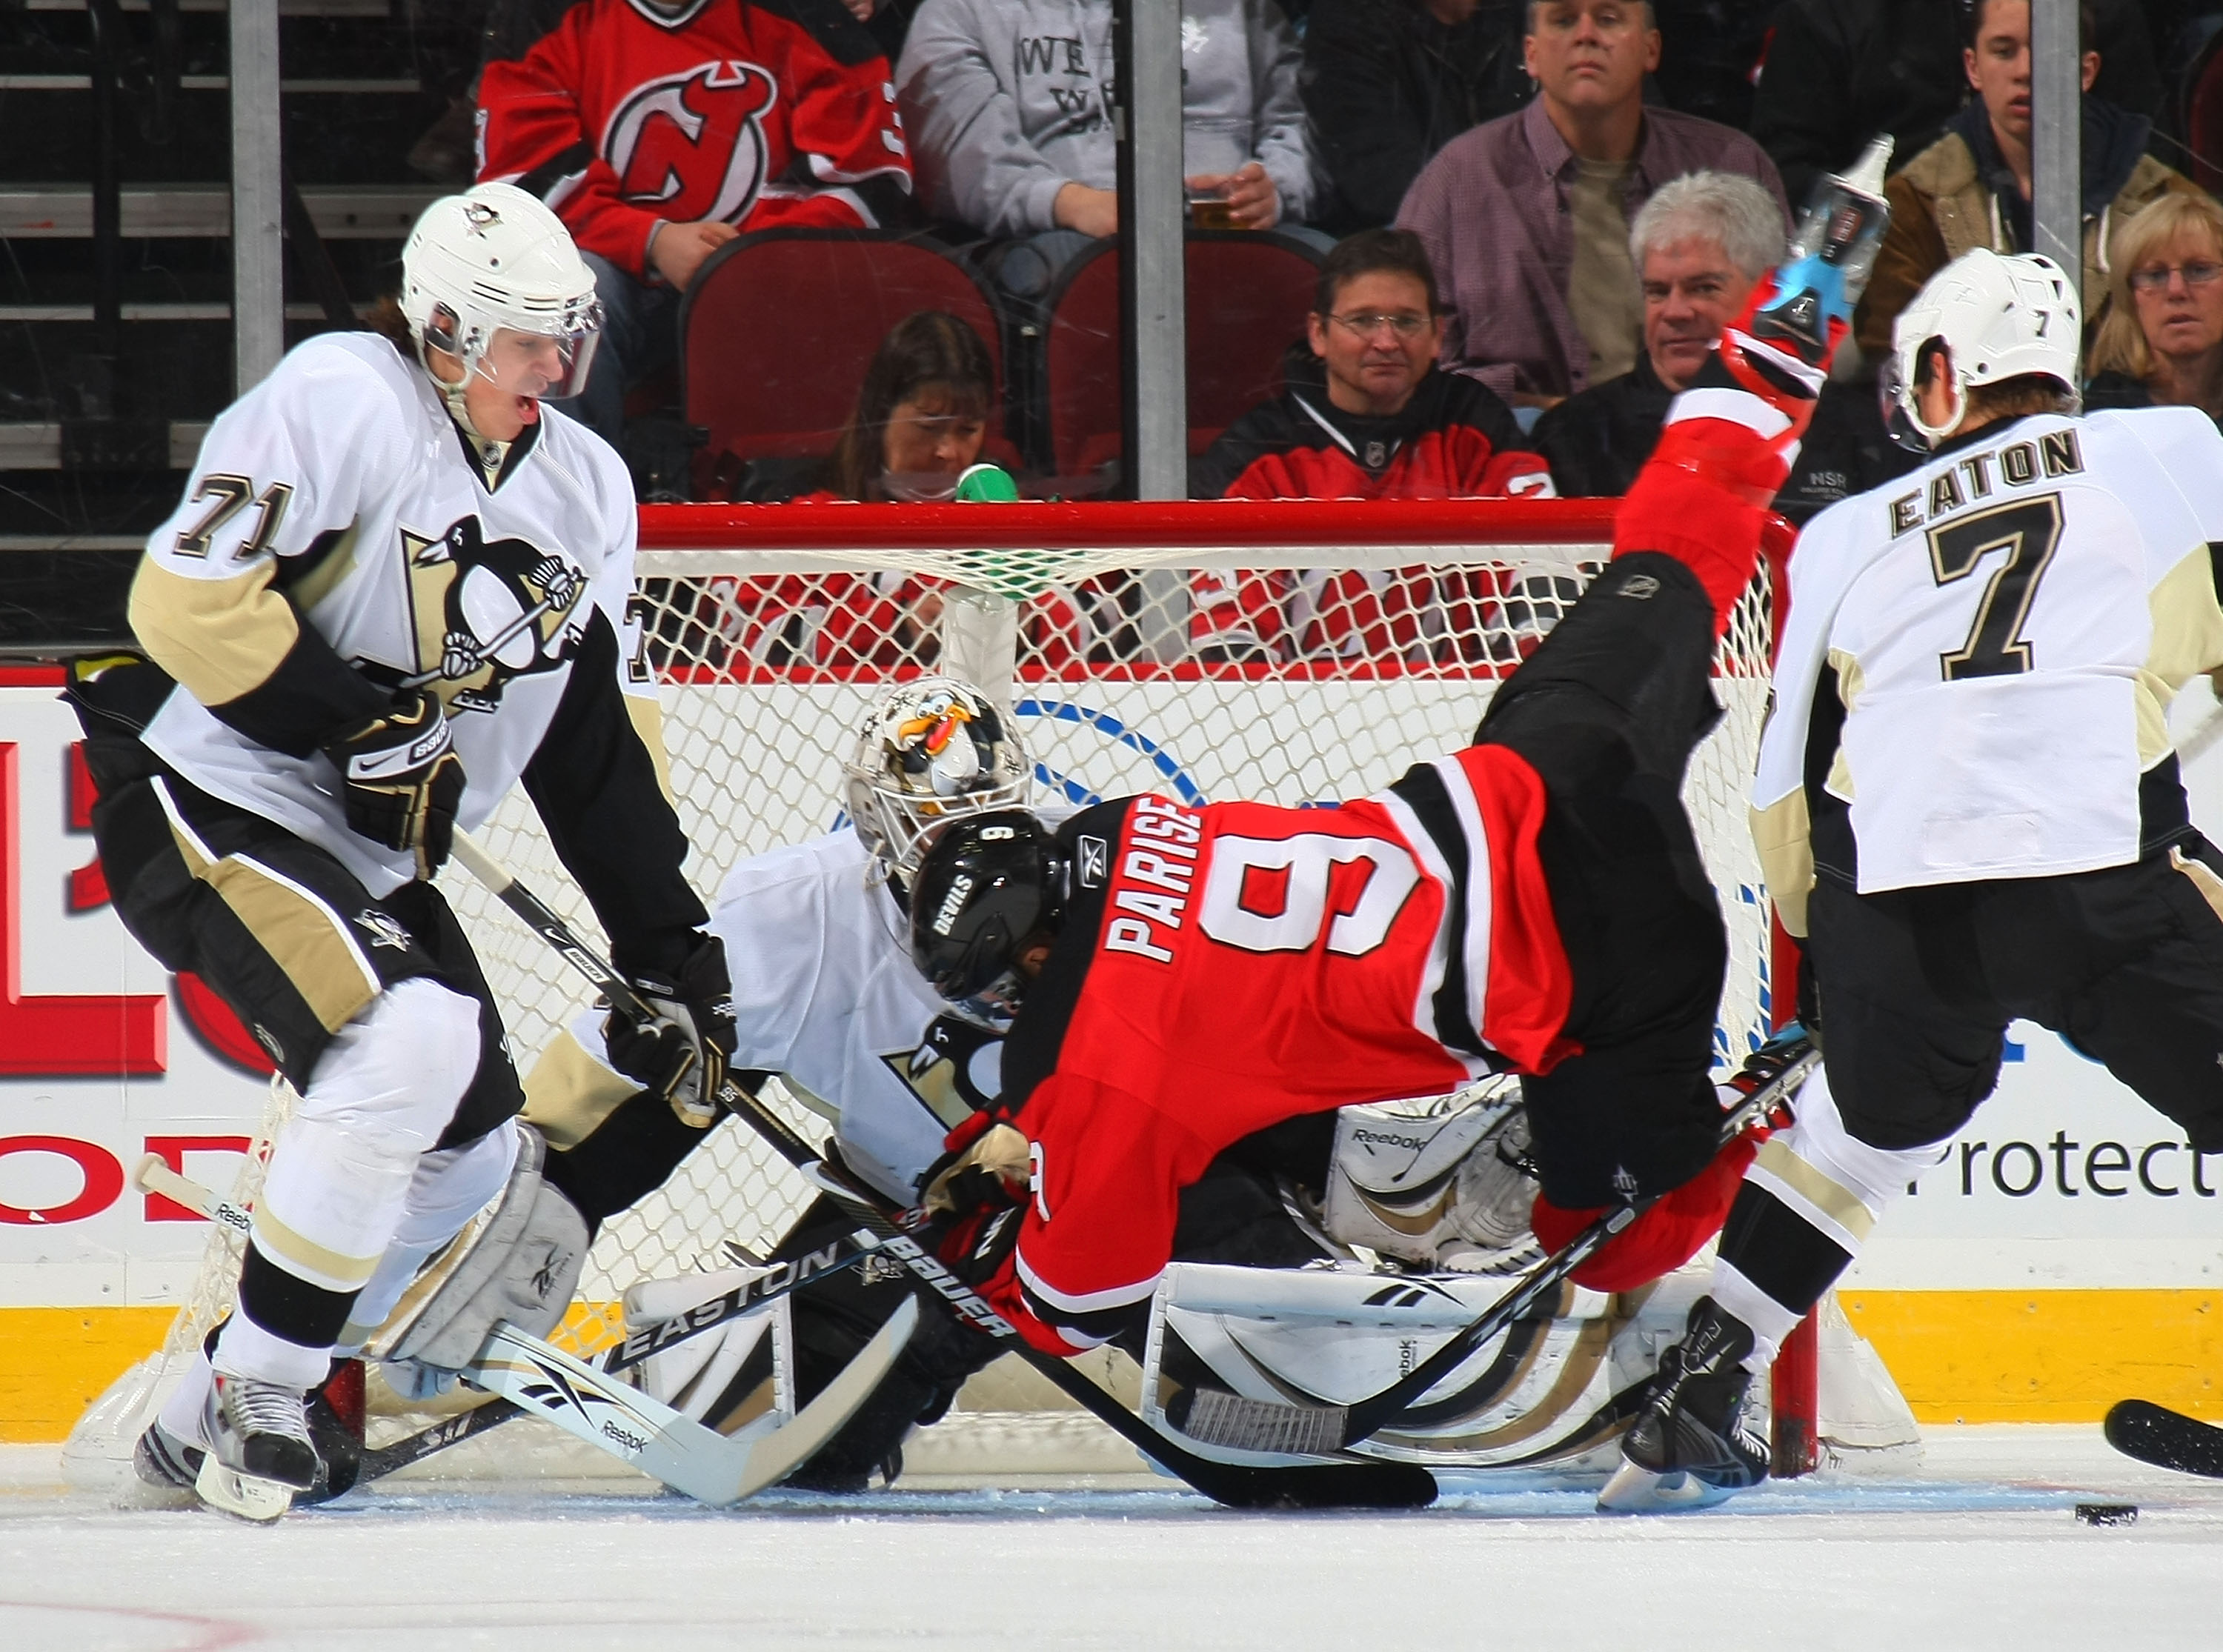 NEWARK, NJ - DECEMBER 10: Goaltender Dany Sabourin #30 of the Pittsburgh Penguins blocks a shot by Zach Parise #9 of the New Jersey Devils as Evgeni Malkin #71 looks for the rebound on December 10, 2008 at the Prudential Center in Newark, New Jersey. (Pho